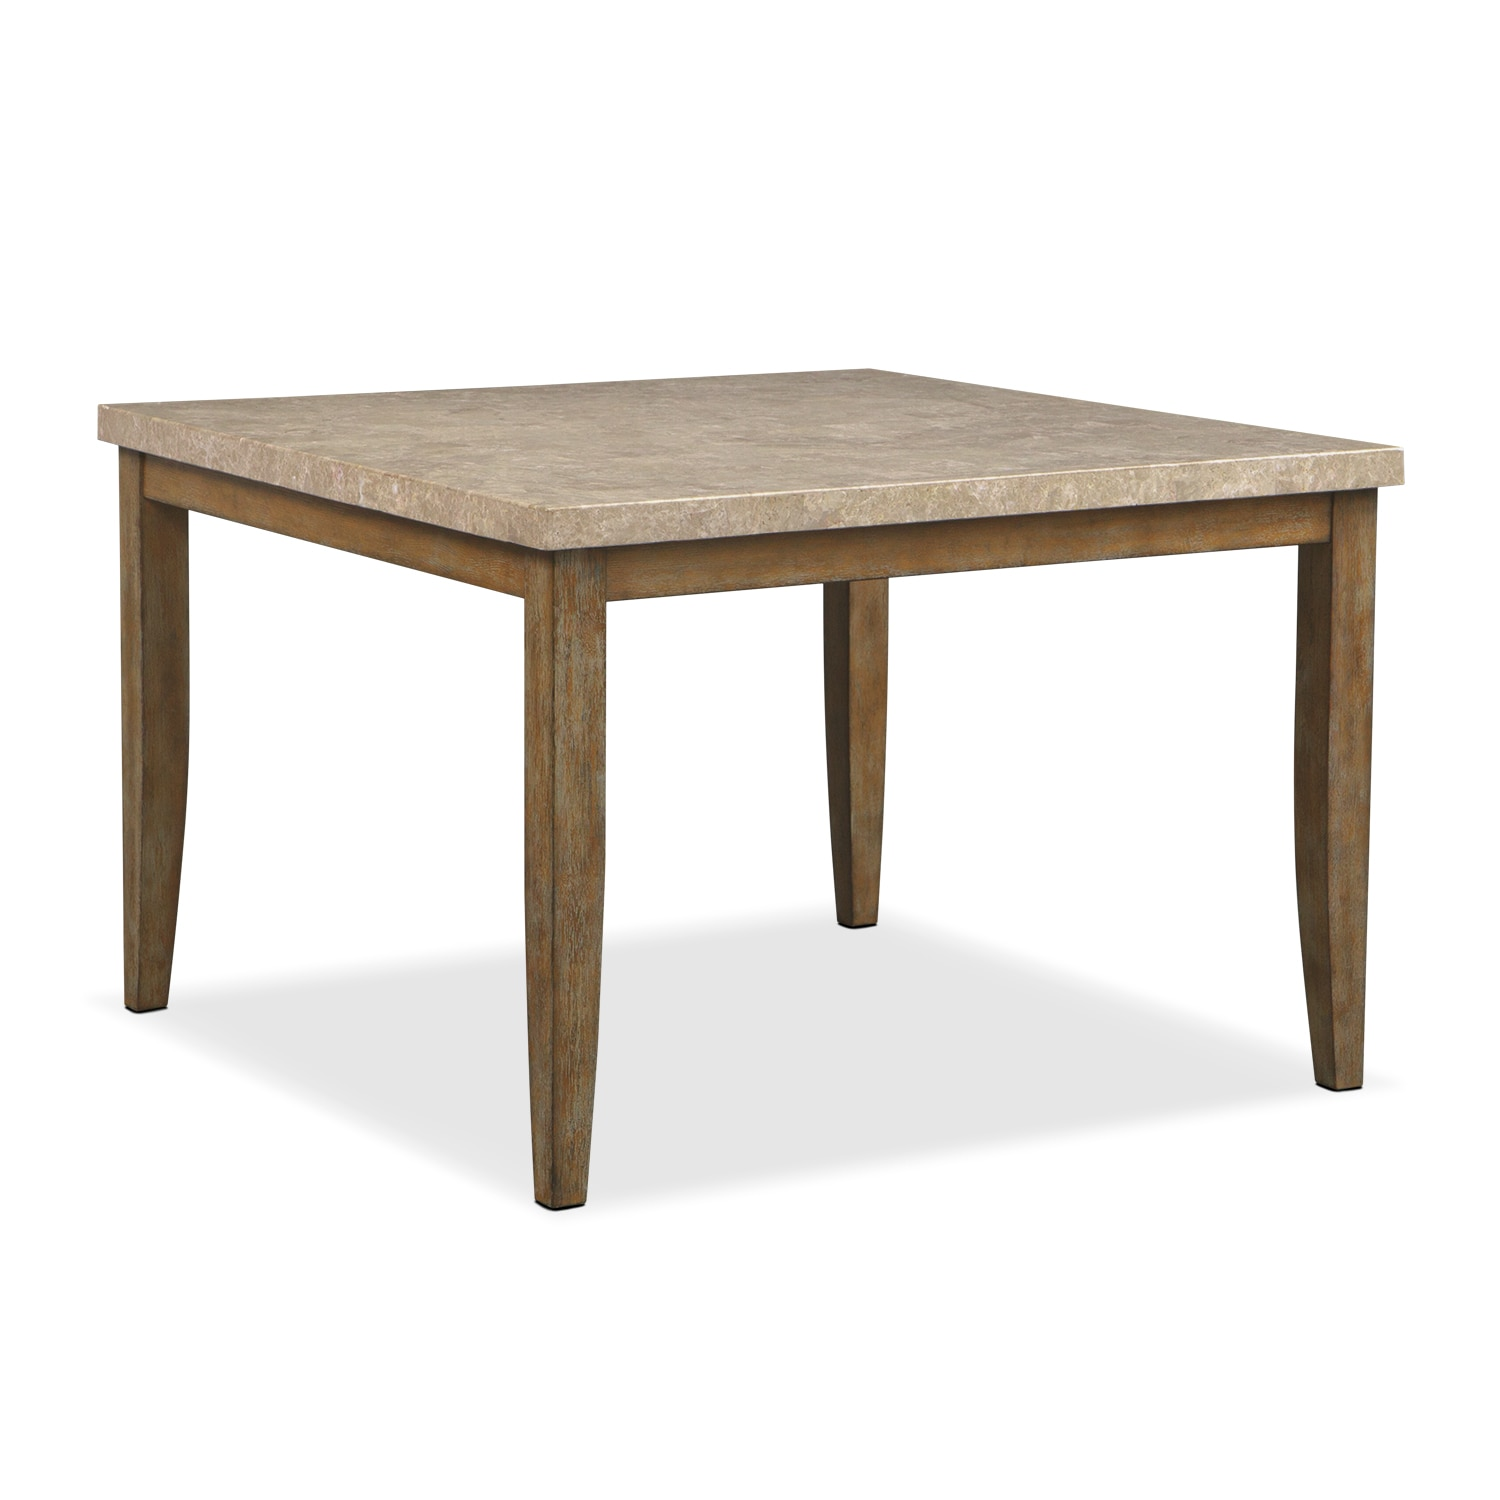 Dining Room Furniture - Sedona Gray Counter-Height Table